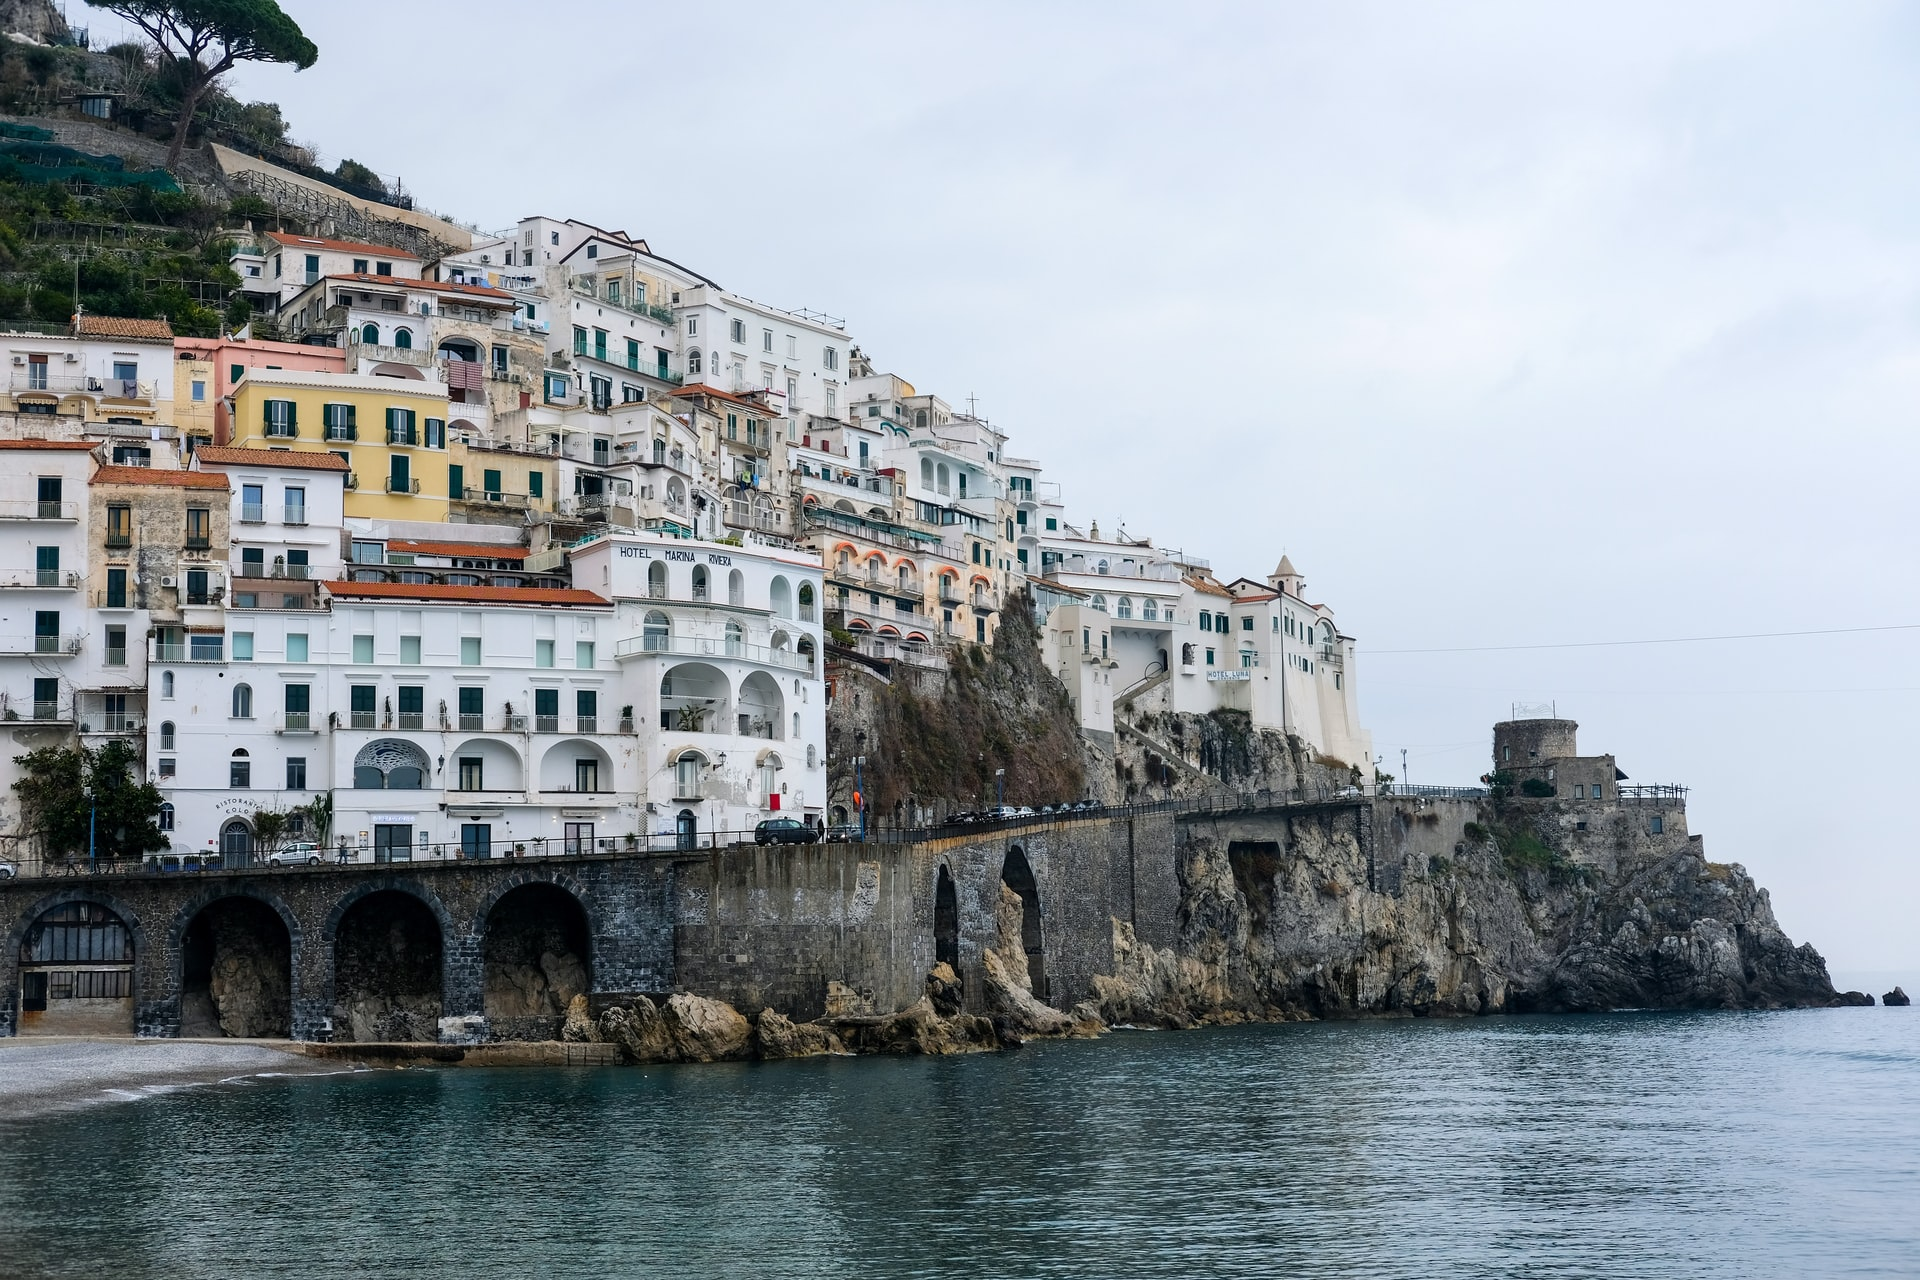 Amalfi Coast 5 day itinerary